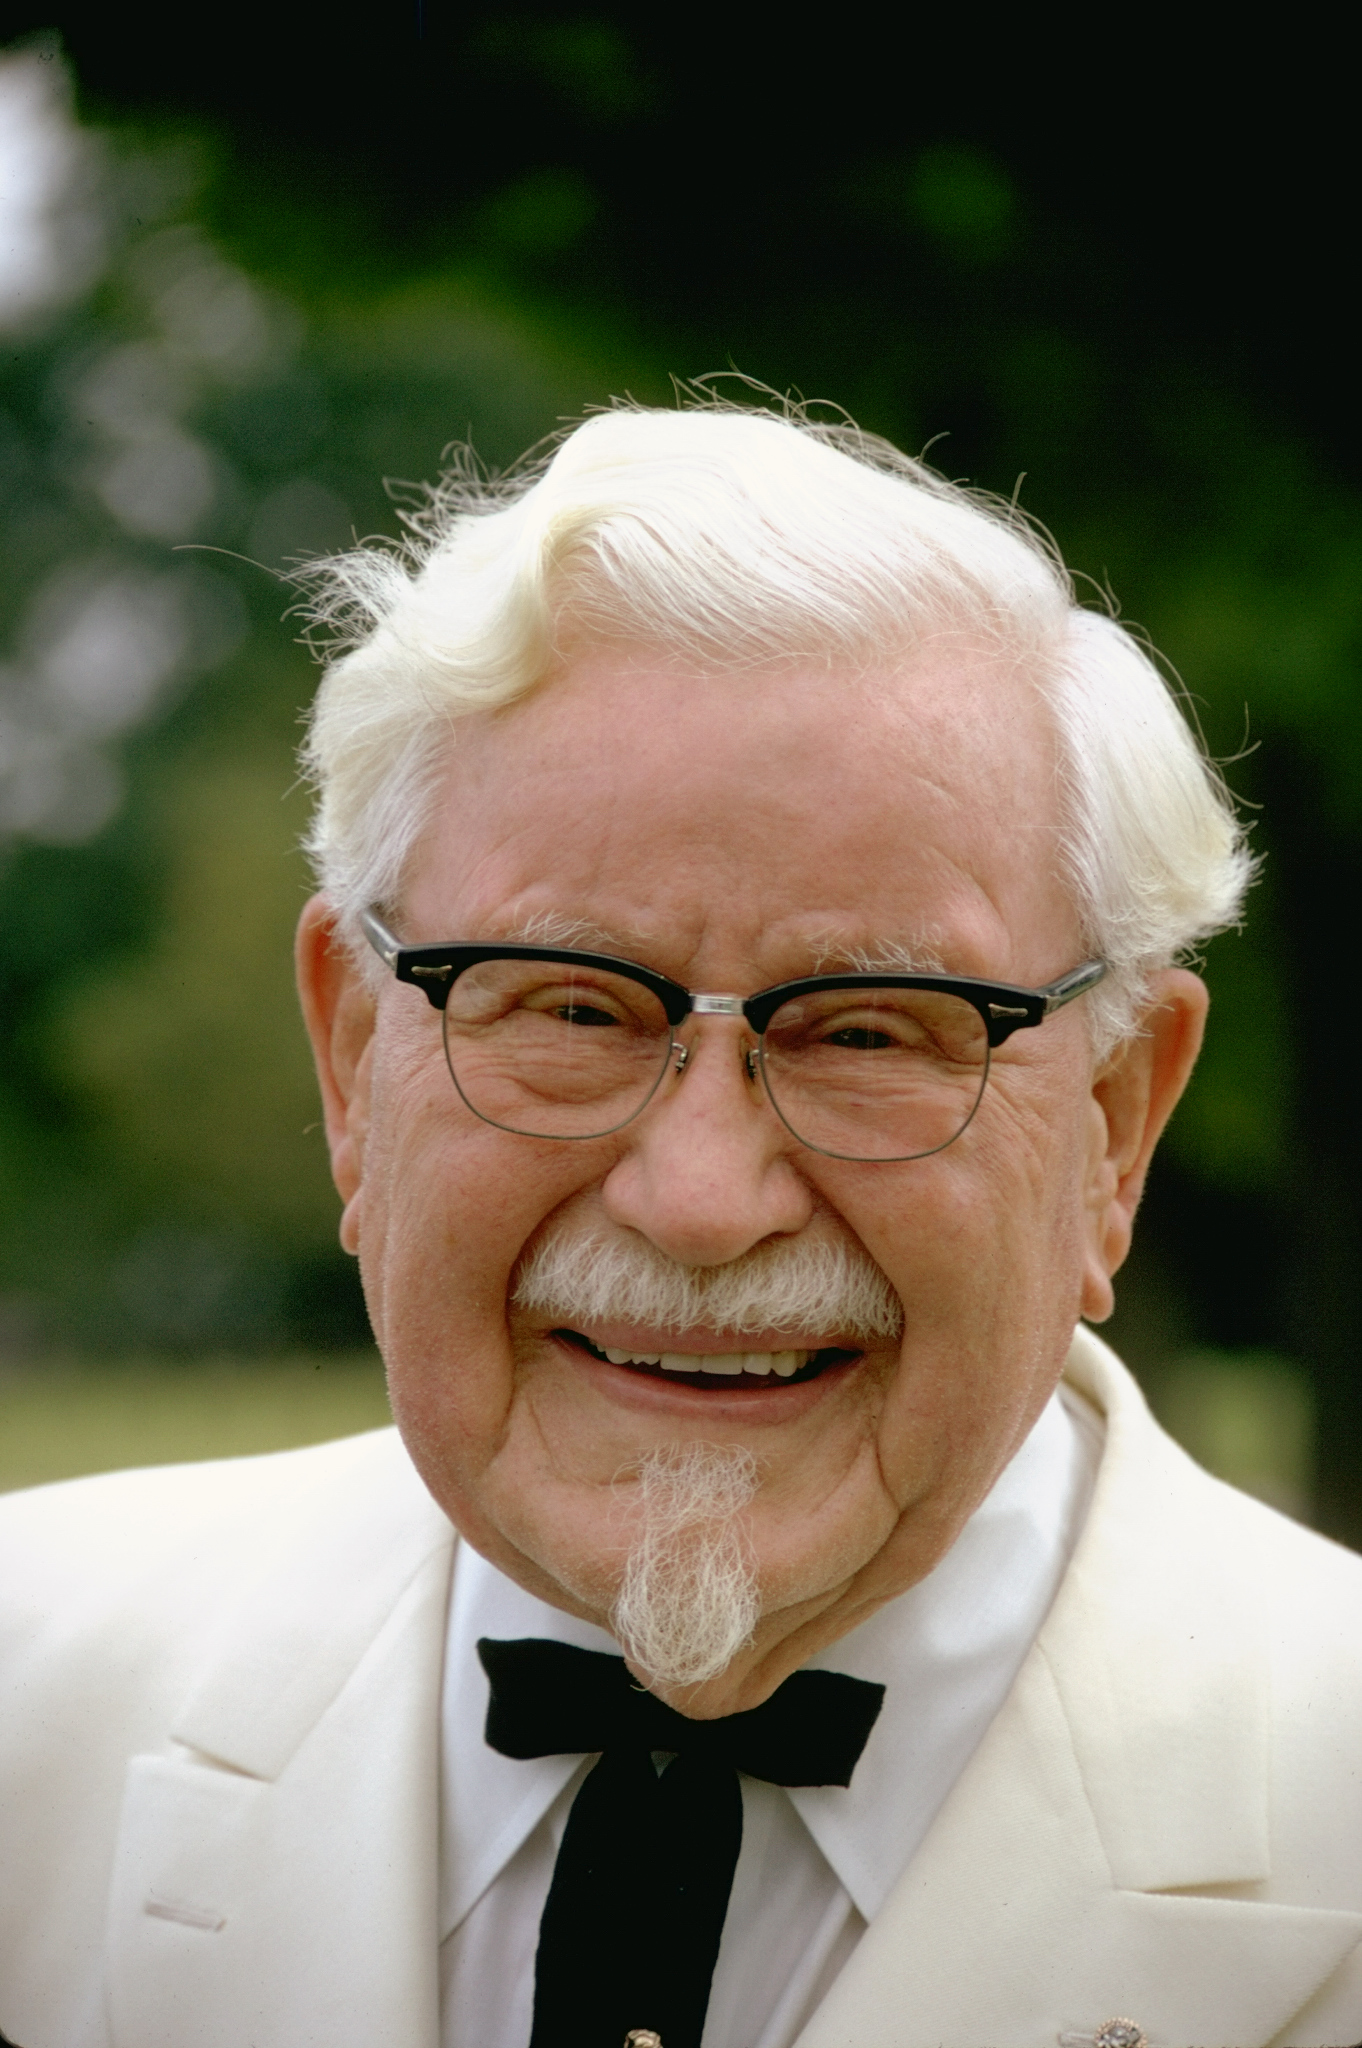 Col. Harland Sanders, founder of Kentucky Fried Chicken.